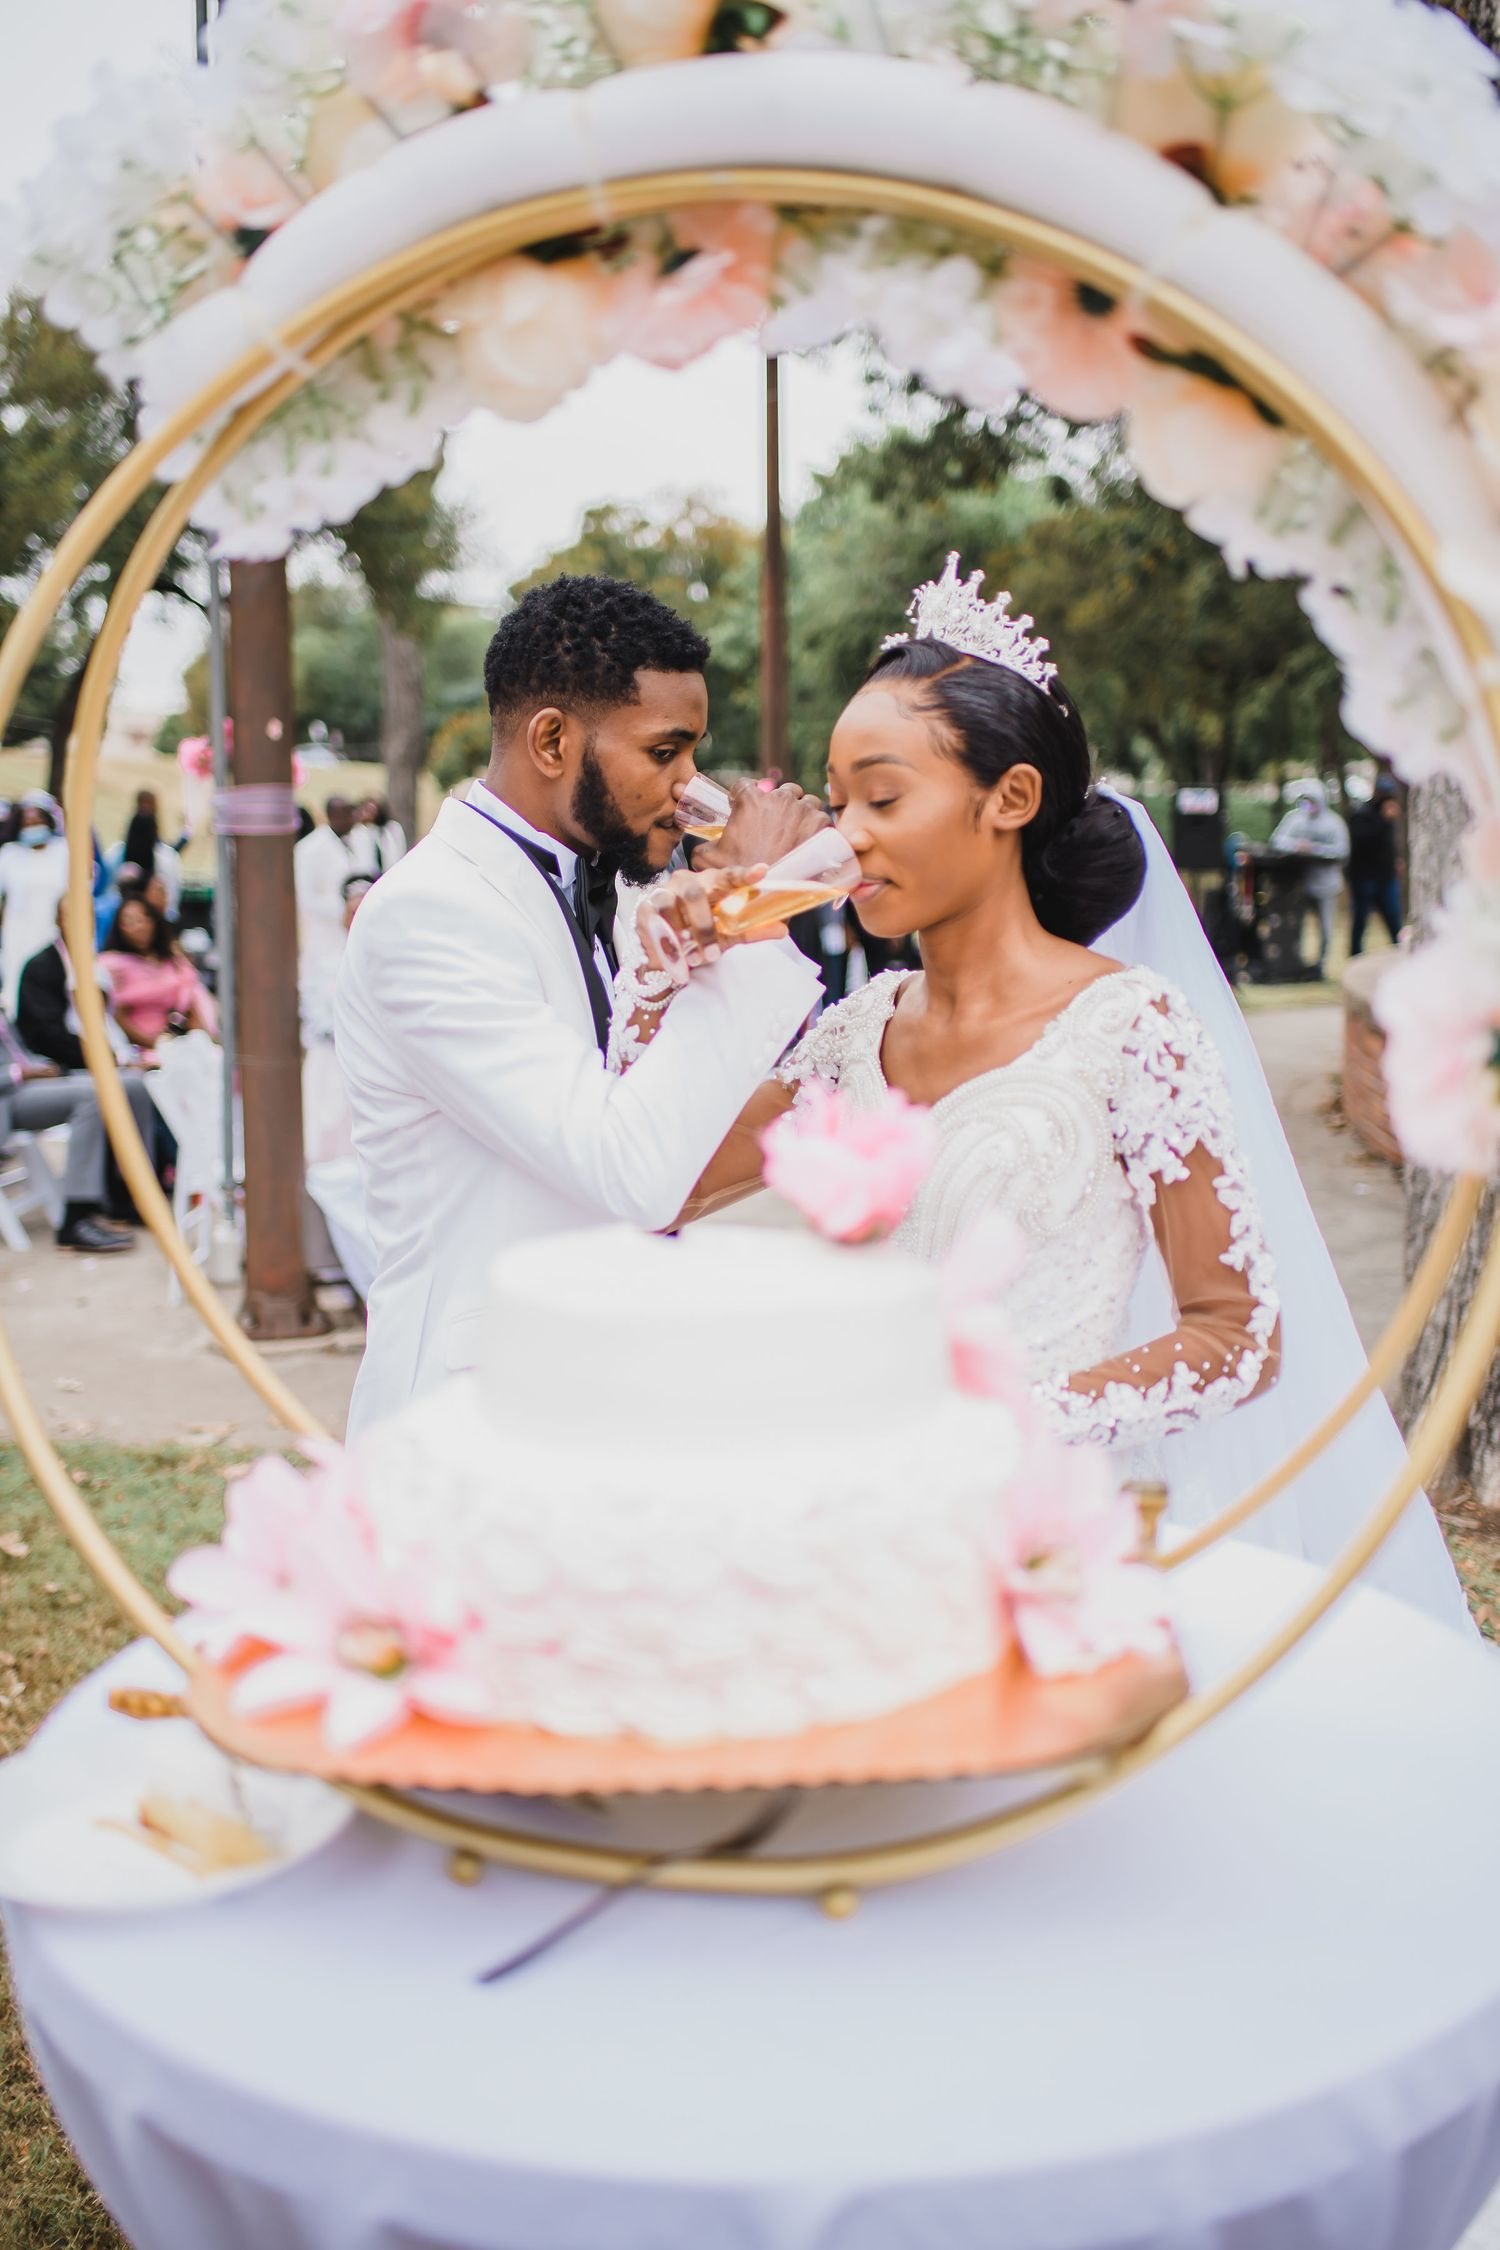 Black wedding photographer in Dallas